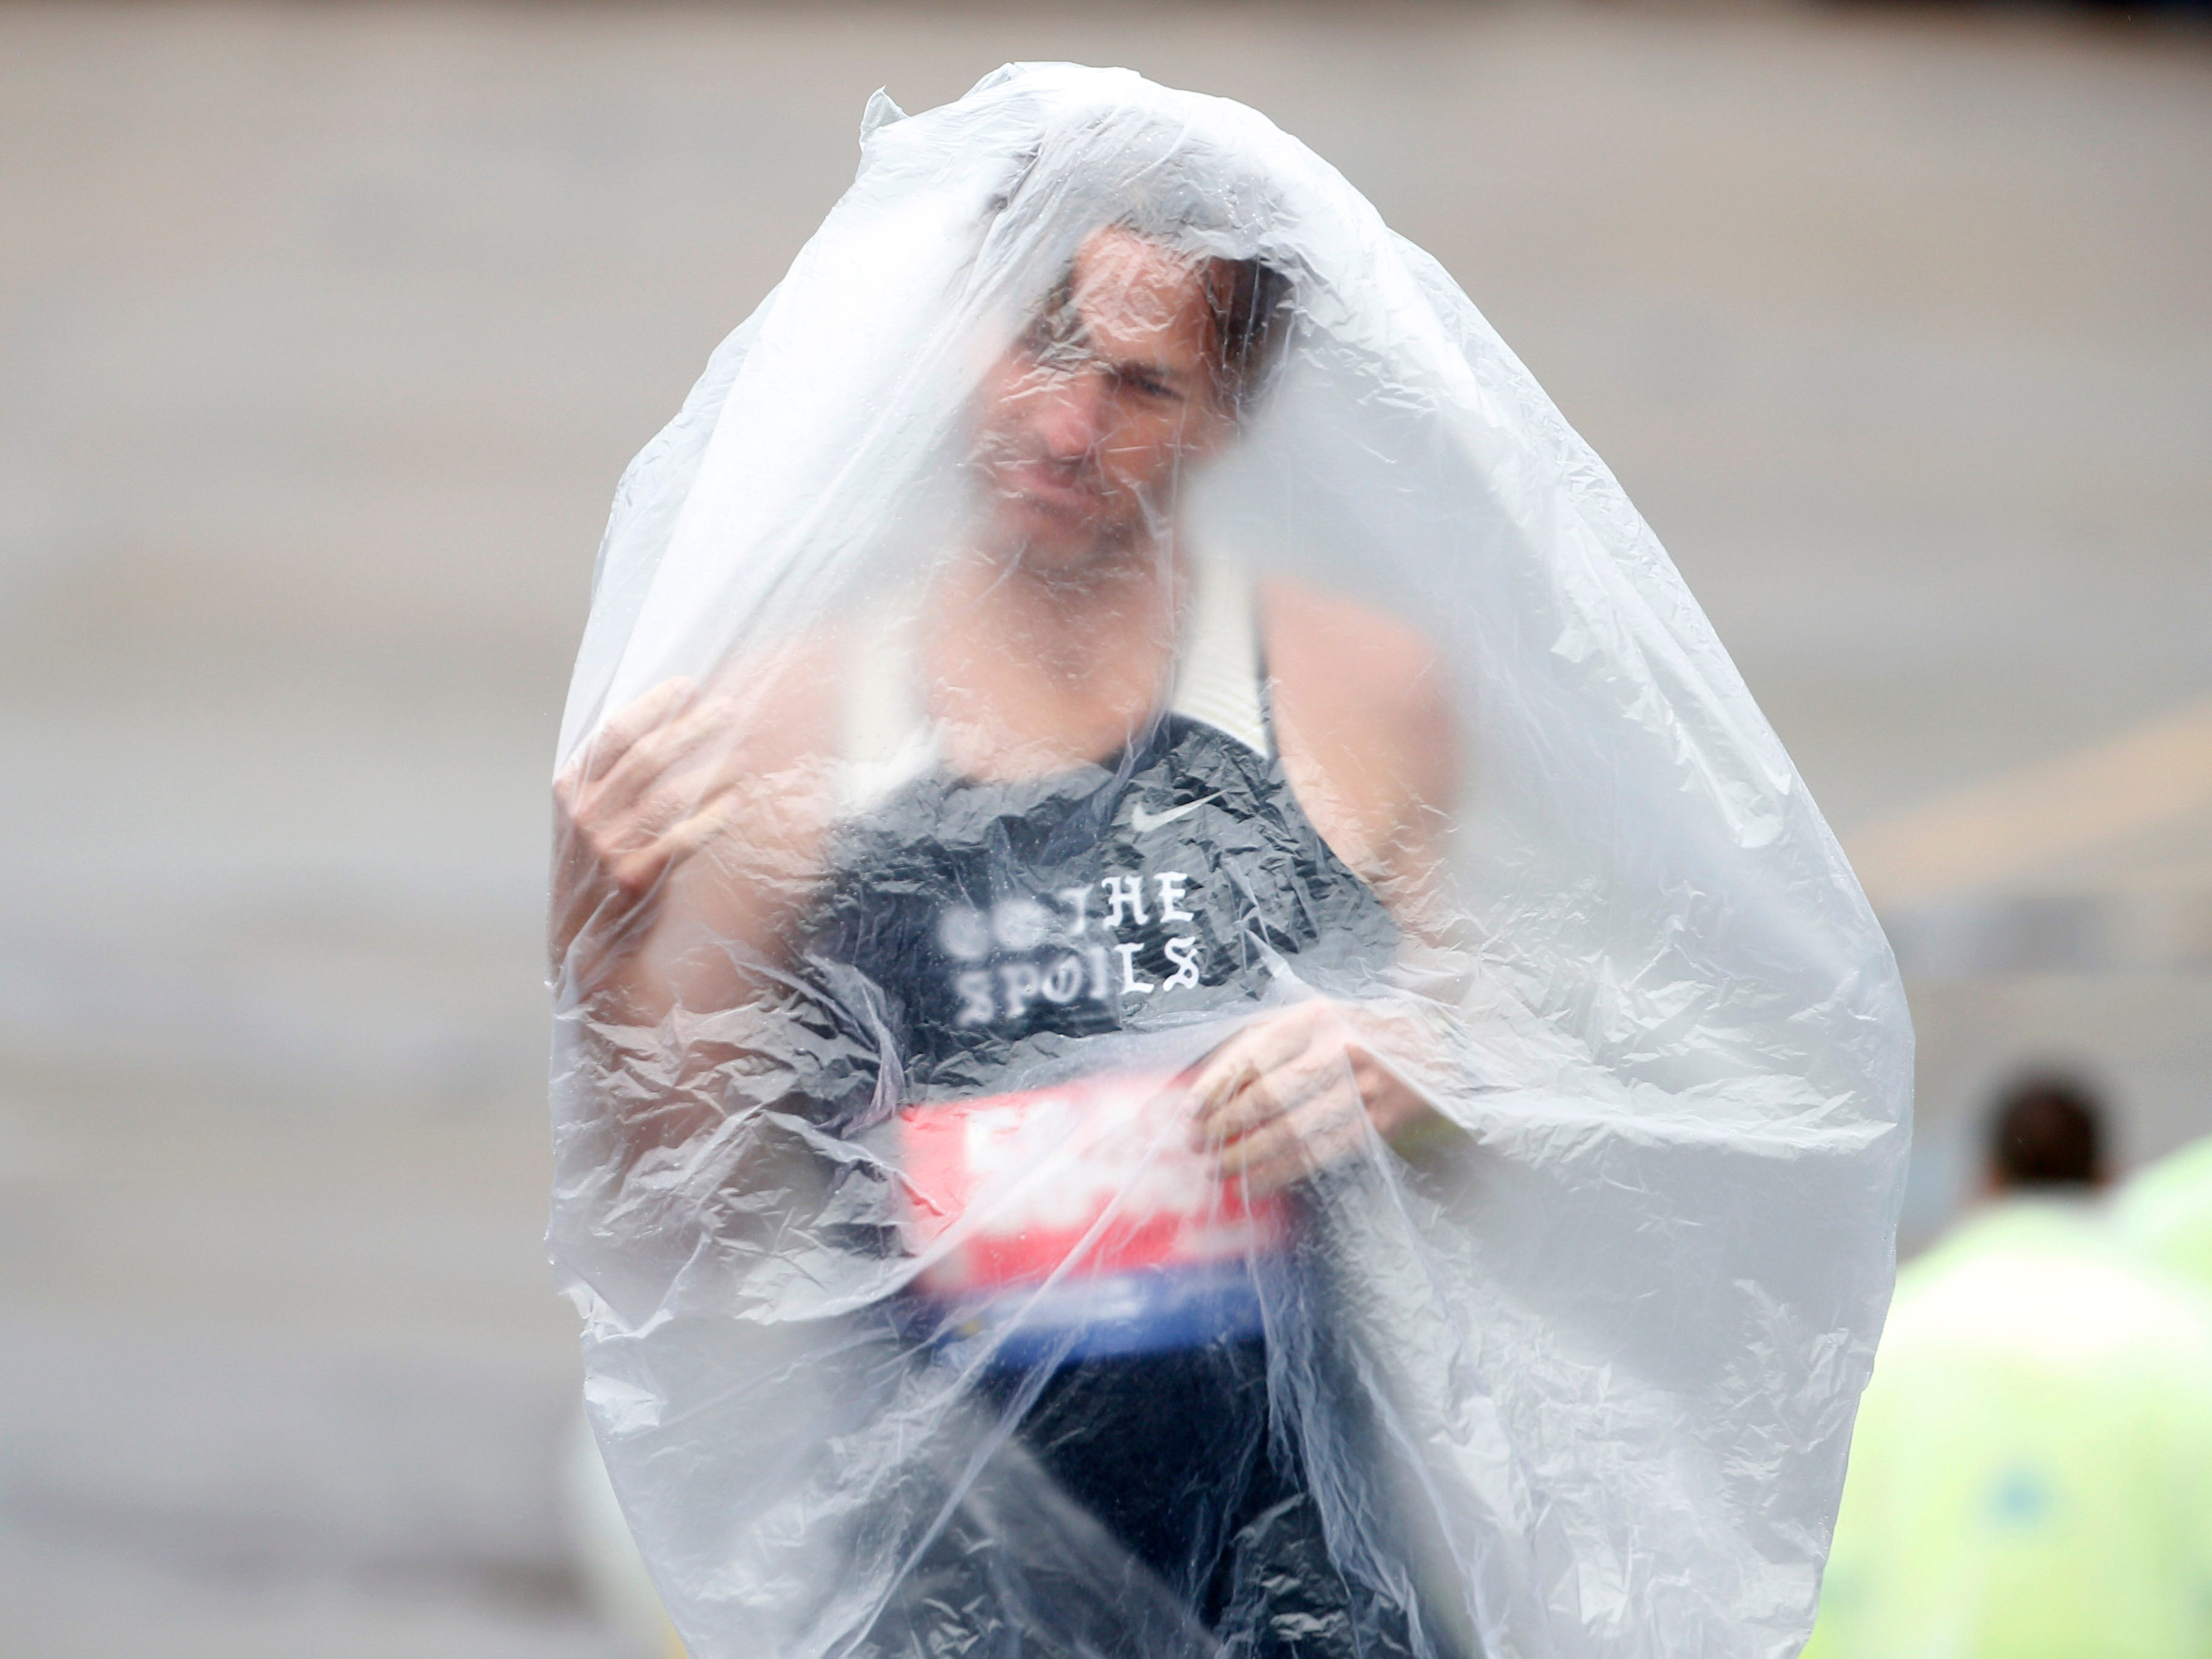 Runner Kyle Rodemacher struggles with his poncho prior to the 2019 Boston Marathon.